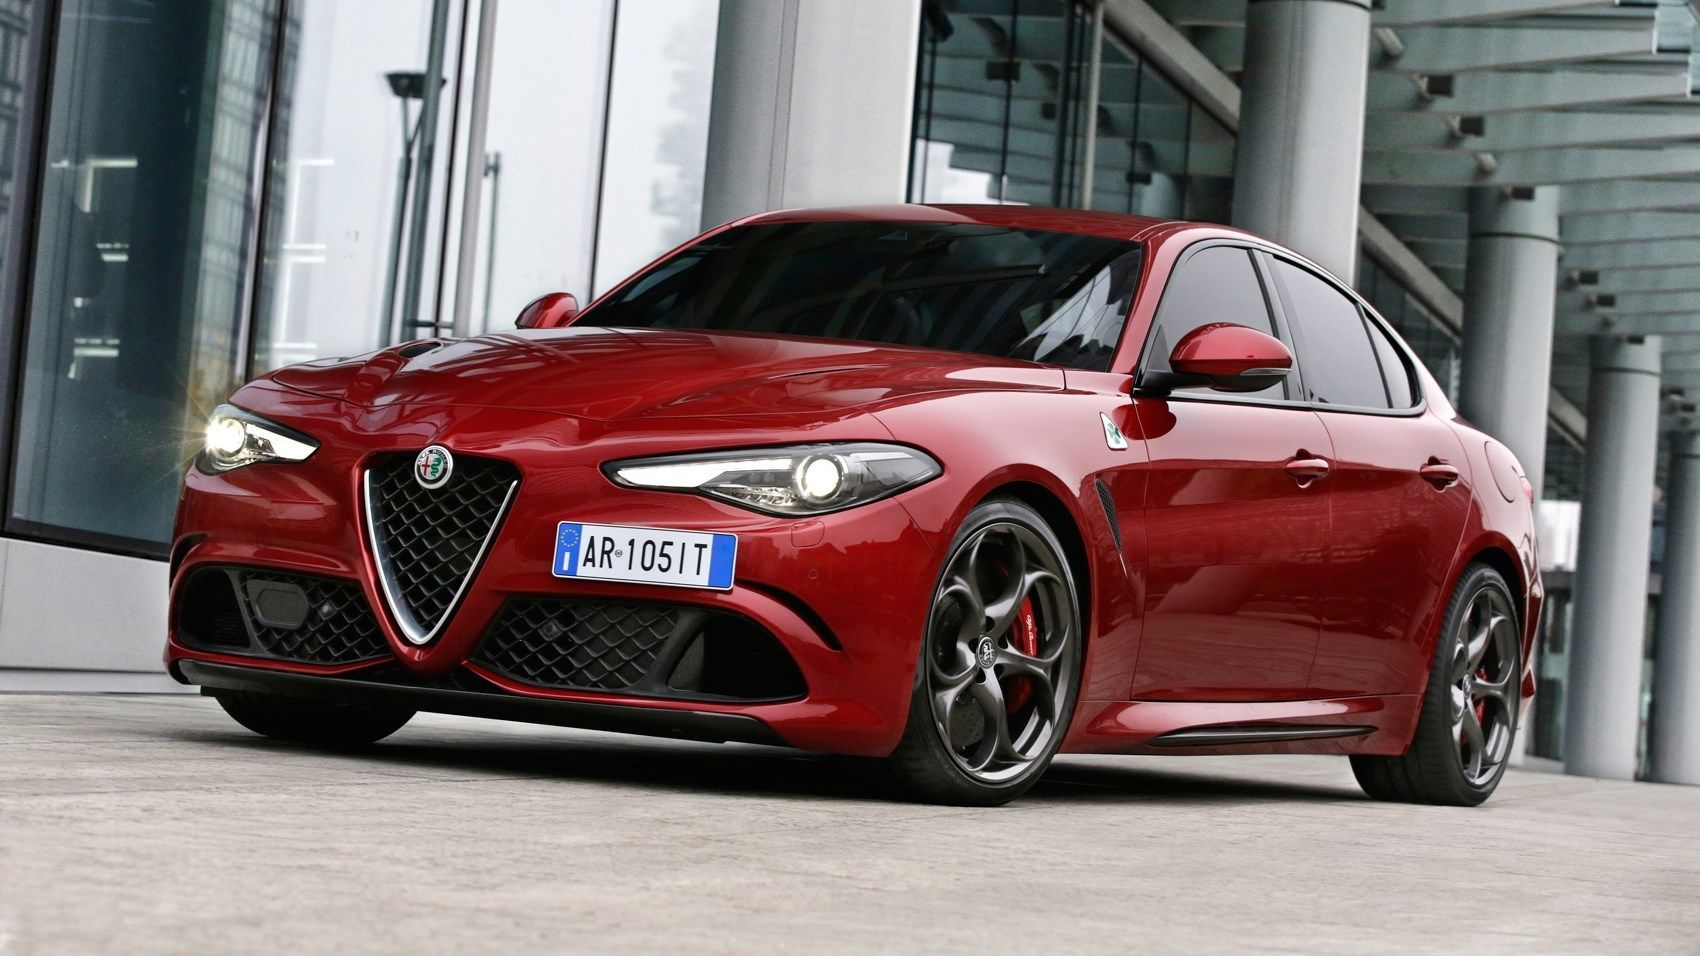 Alfa Romeos Bhp Supersaloon Starts From On Sale In UK - Alfa romeos for sale